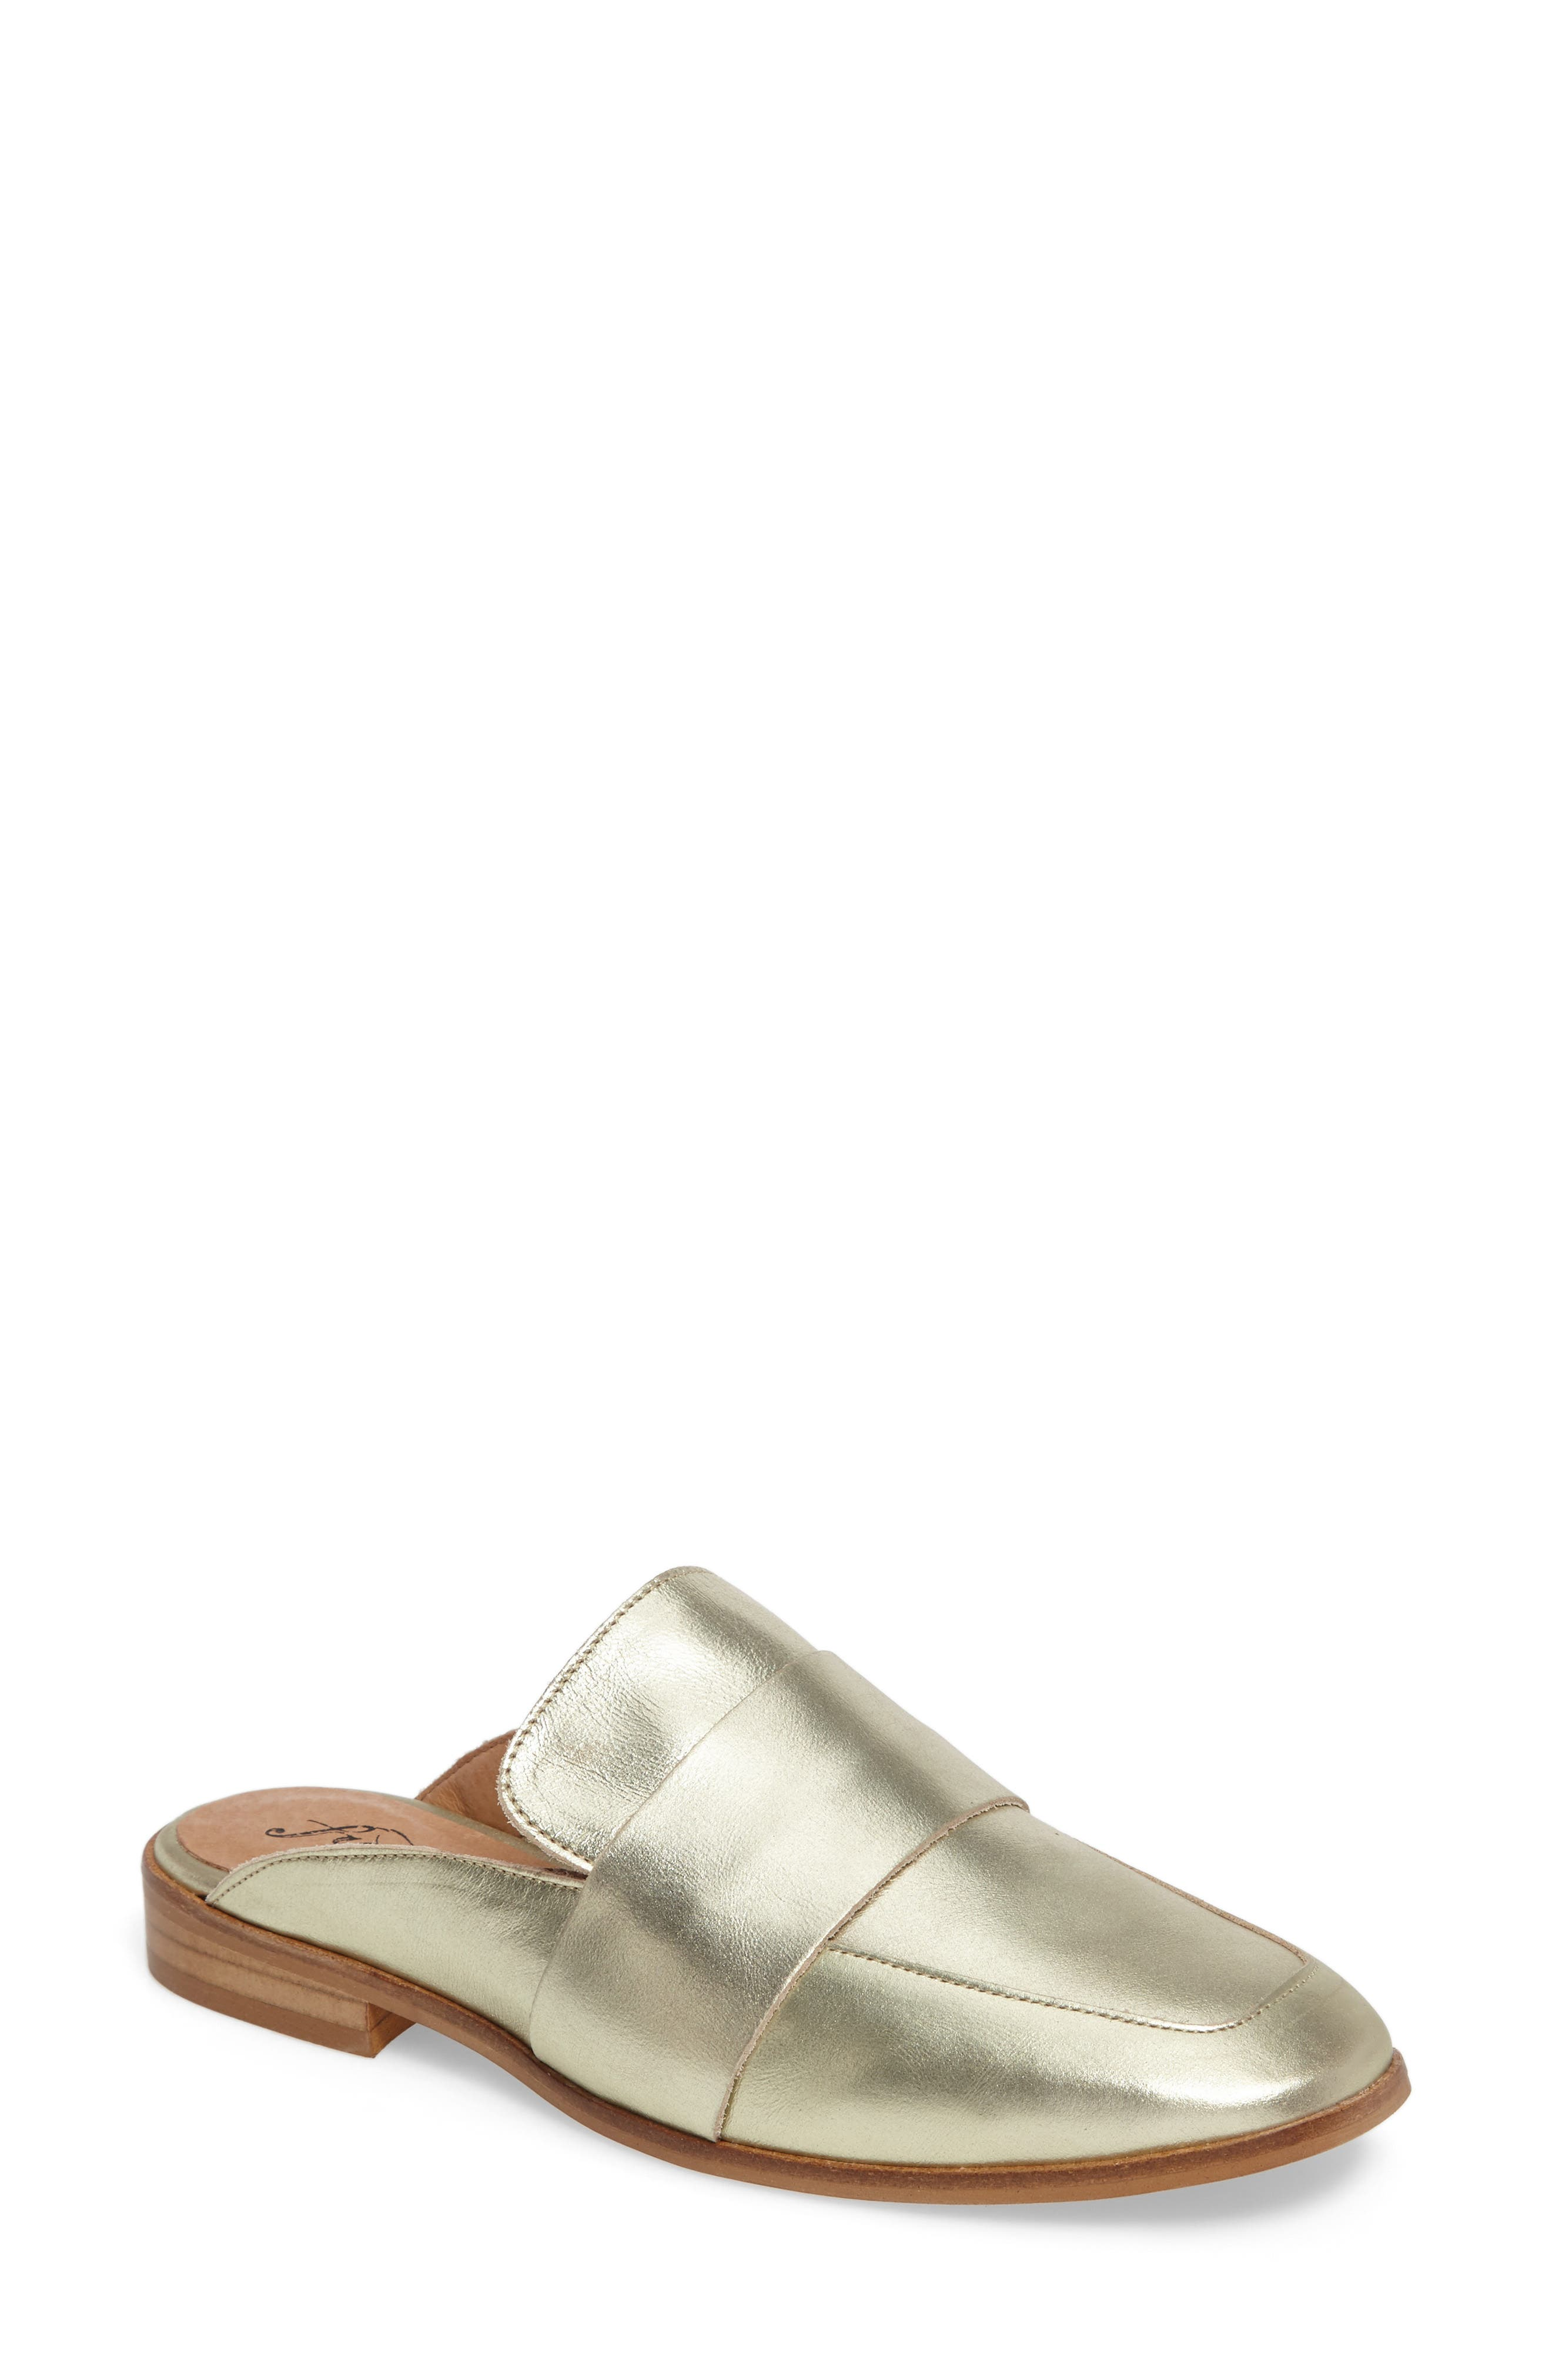 At Ease Loafer Mule,                             Main thumbnail 1, color,                             GOLD LEATHER